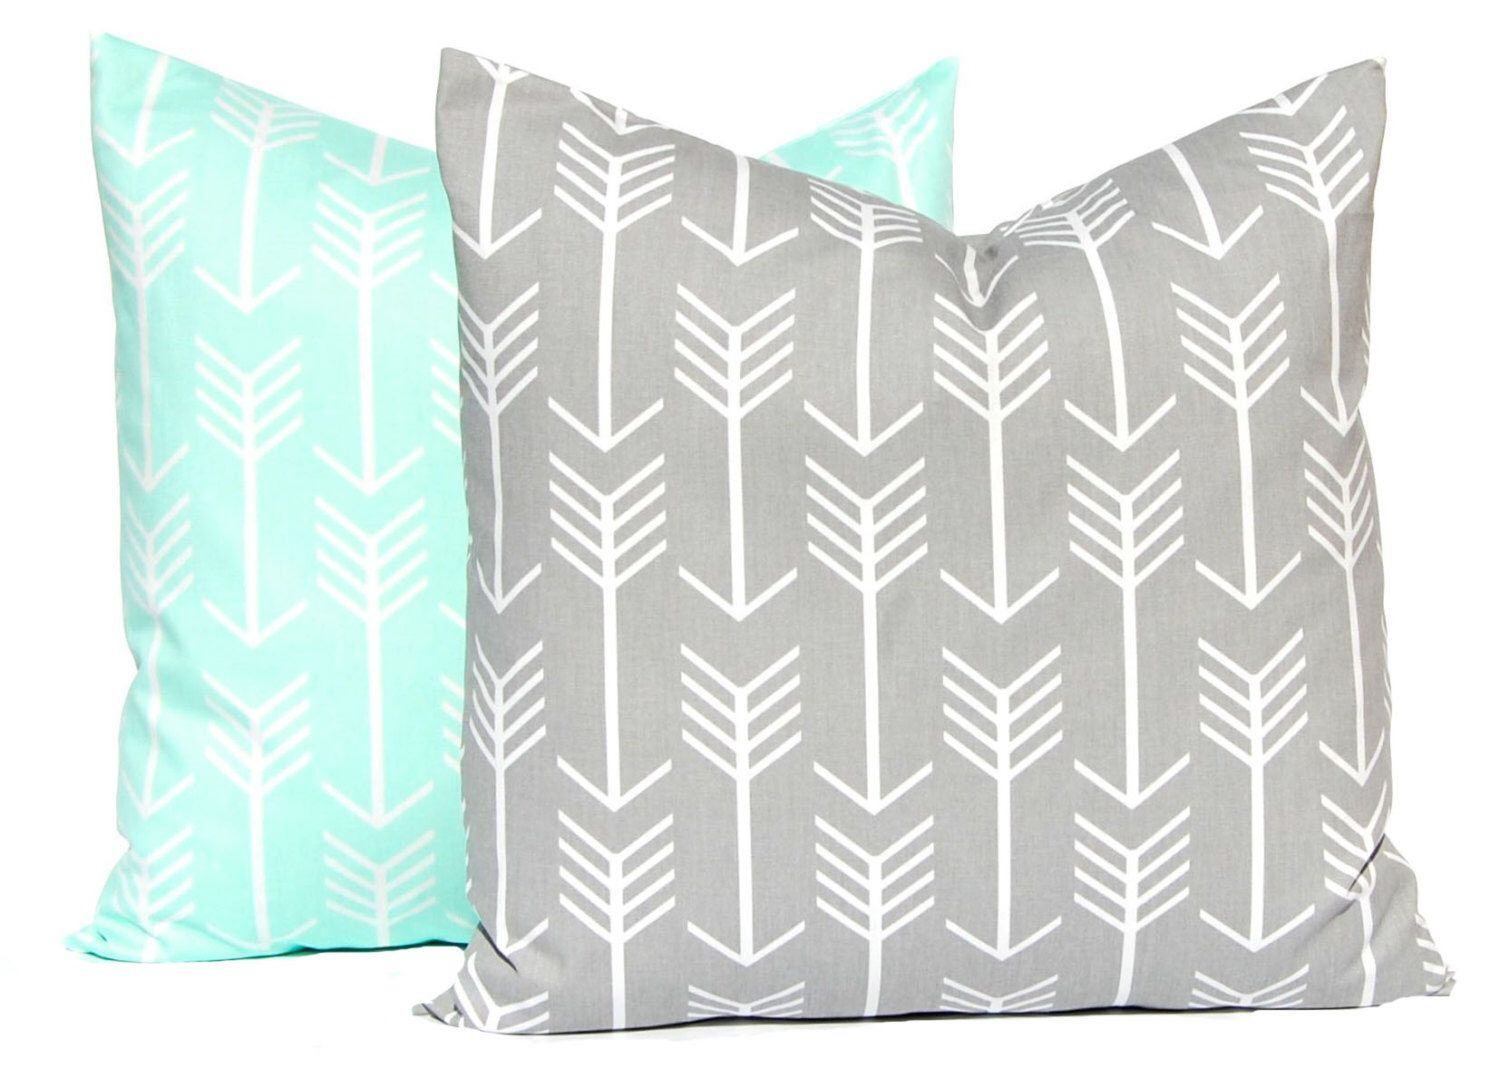 Etsy Throw Pillows Mint Green And Gray Pillow Covers Grey Pillow Throw Pillow Cover